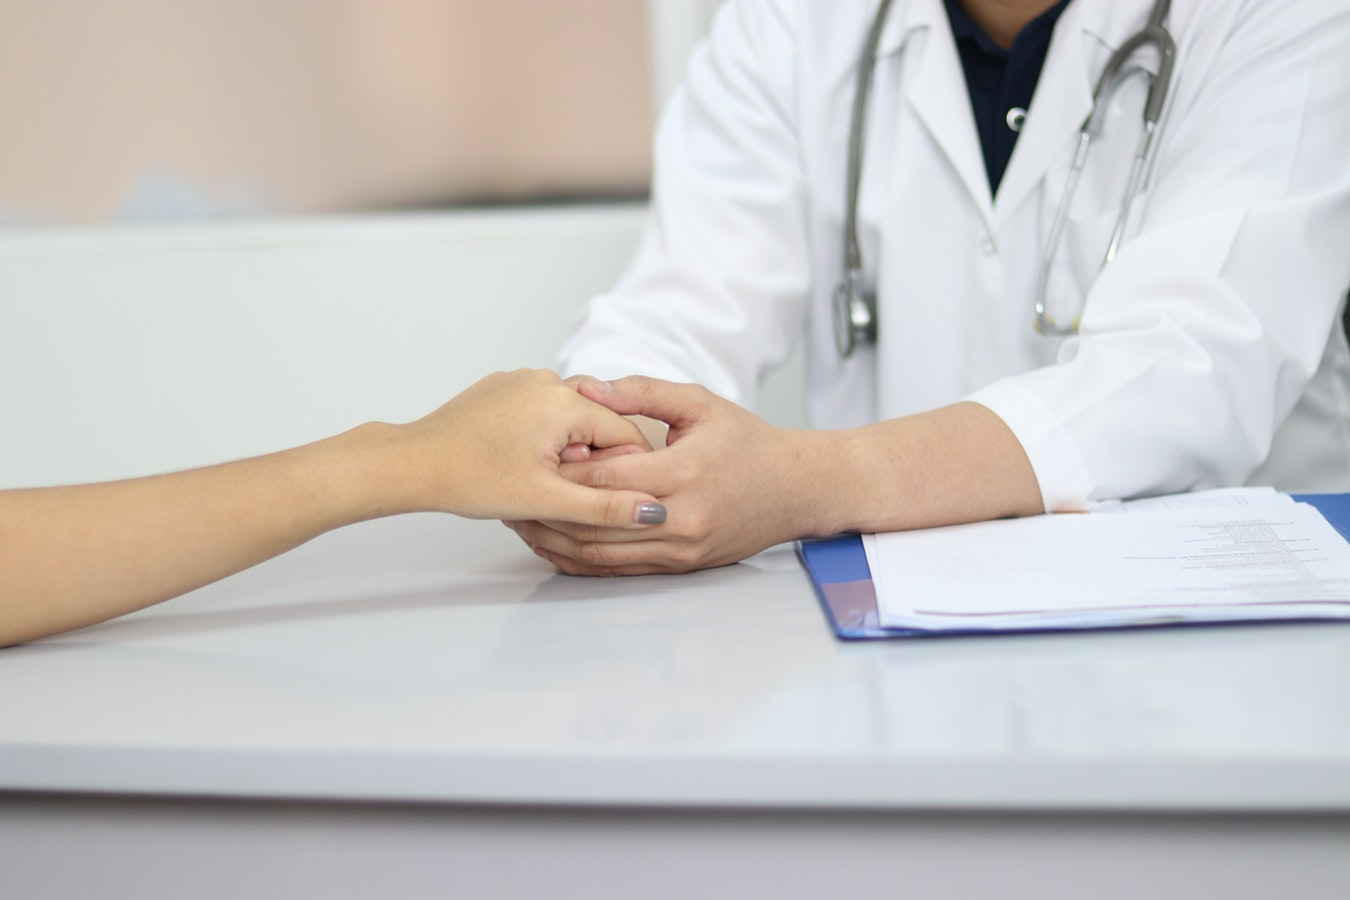 A caregiver holding hands with a doctor that they are talking to.